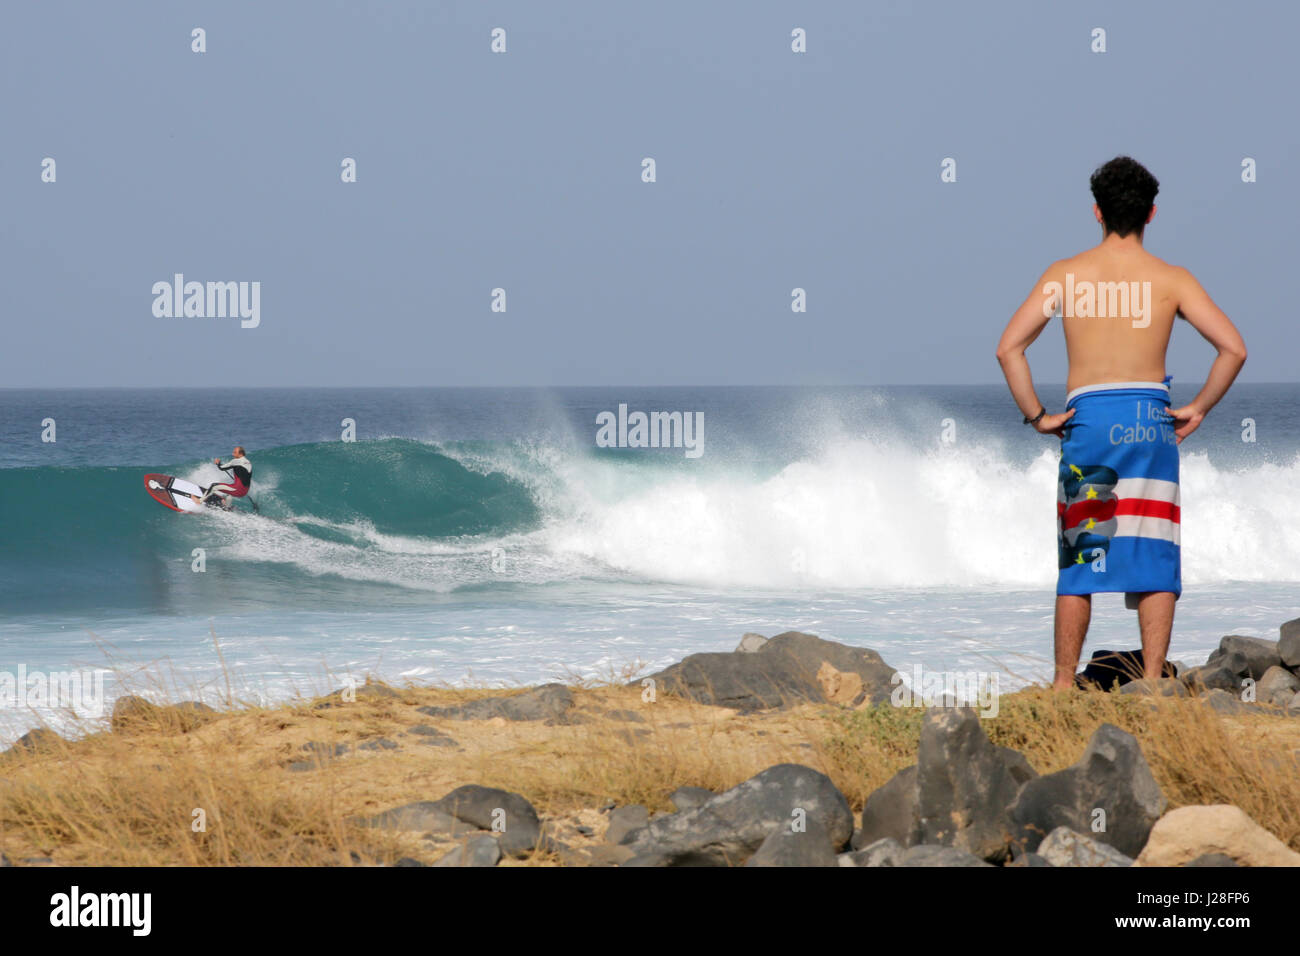 Man in a towel watching a surfer - Stock Image